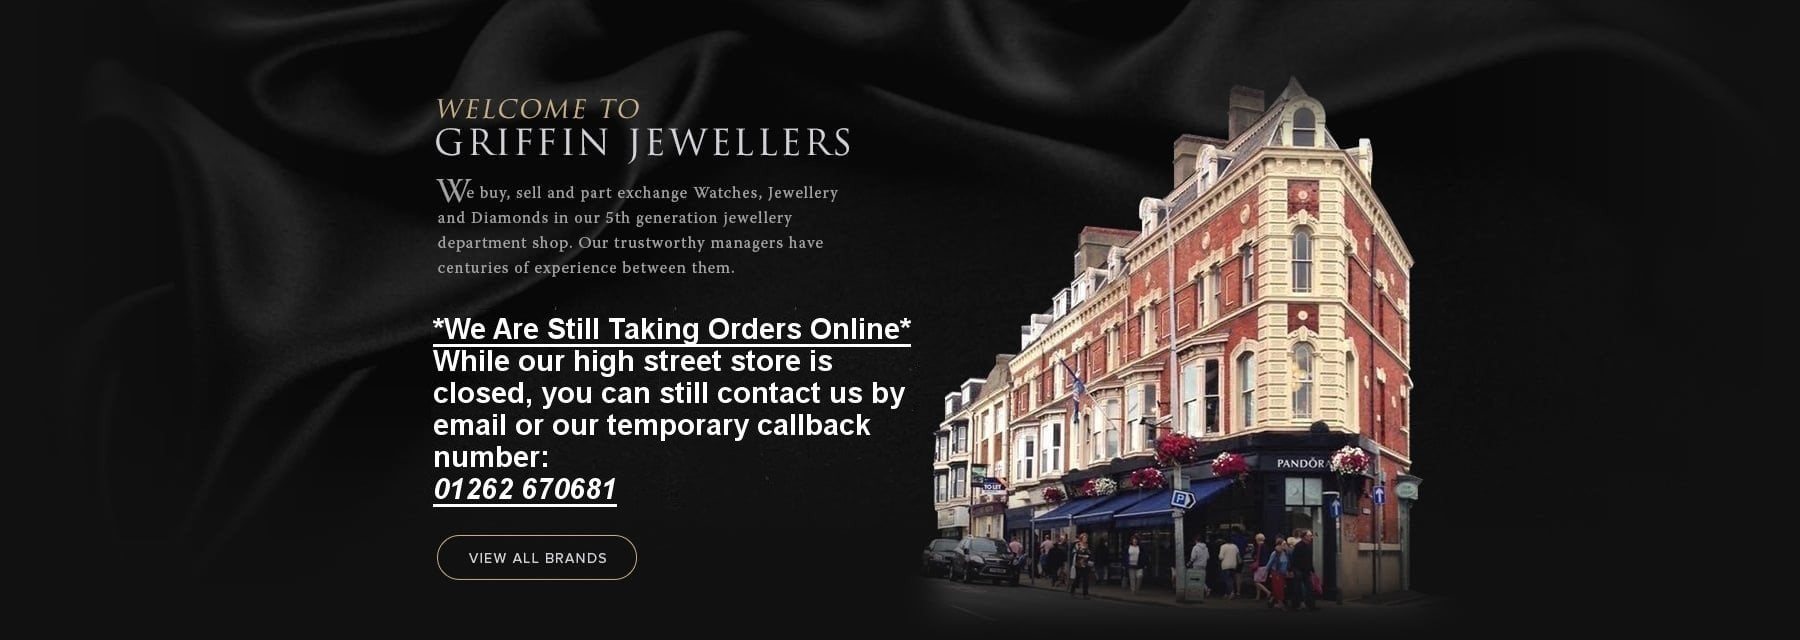 Welcome To Griffin Jewellers